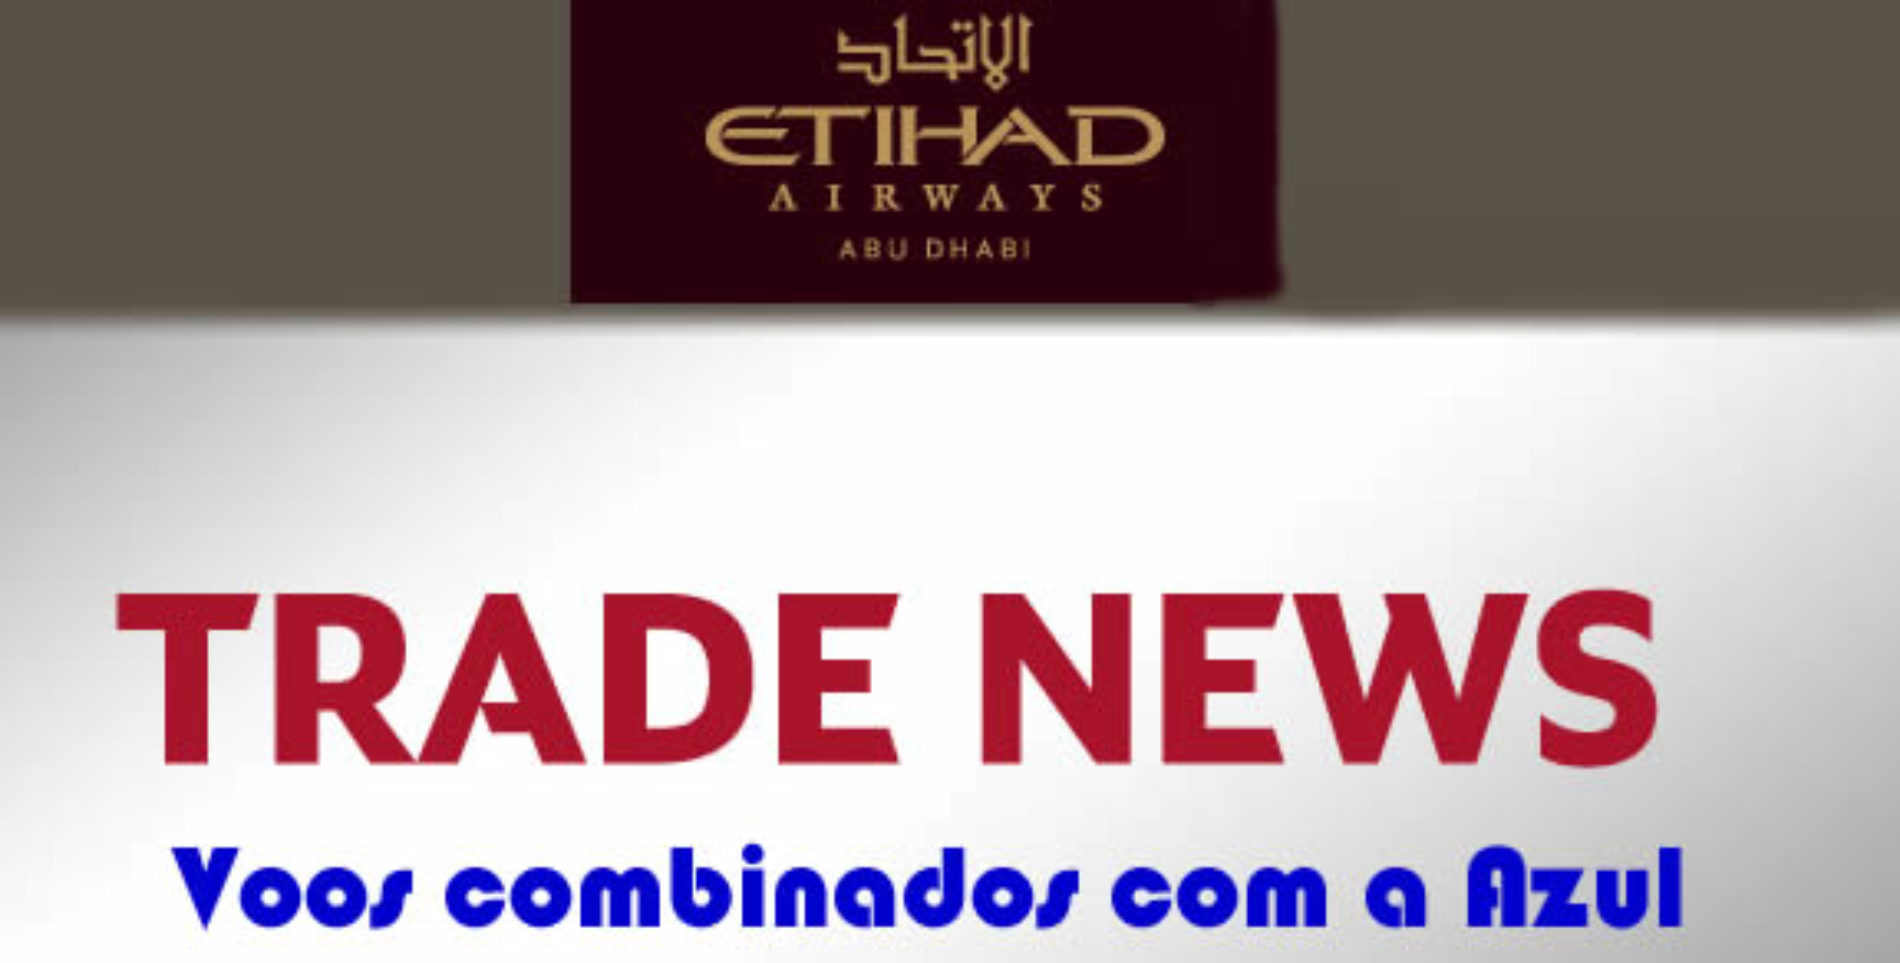 Passagens Interligadas- Etihad Airways e Azul assinam acordo Interline